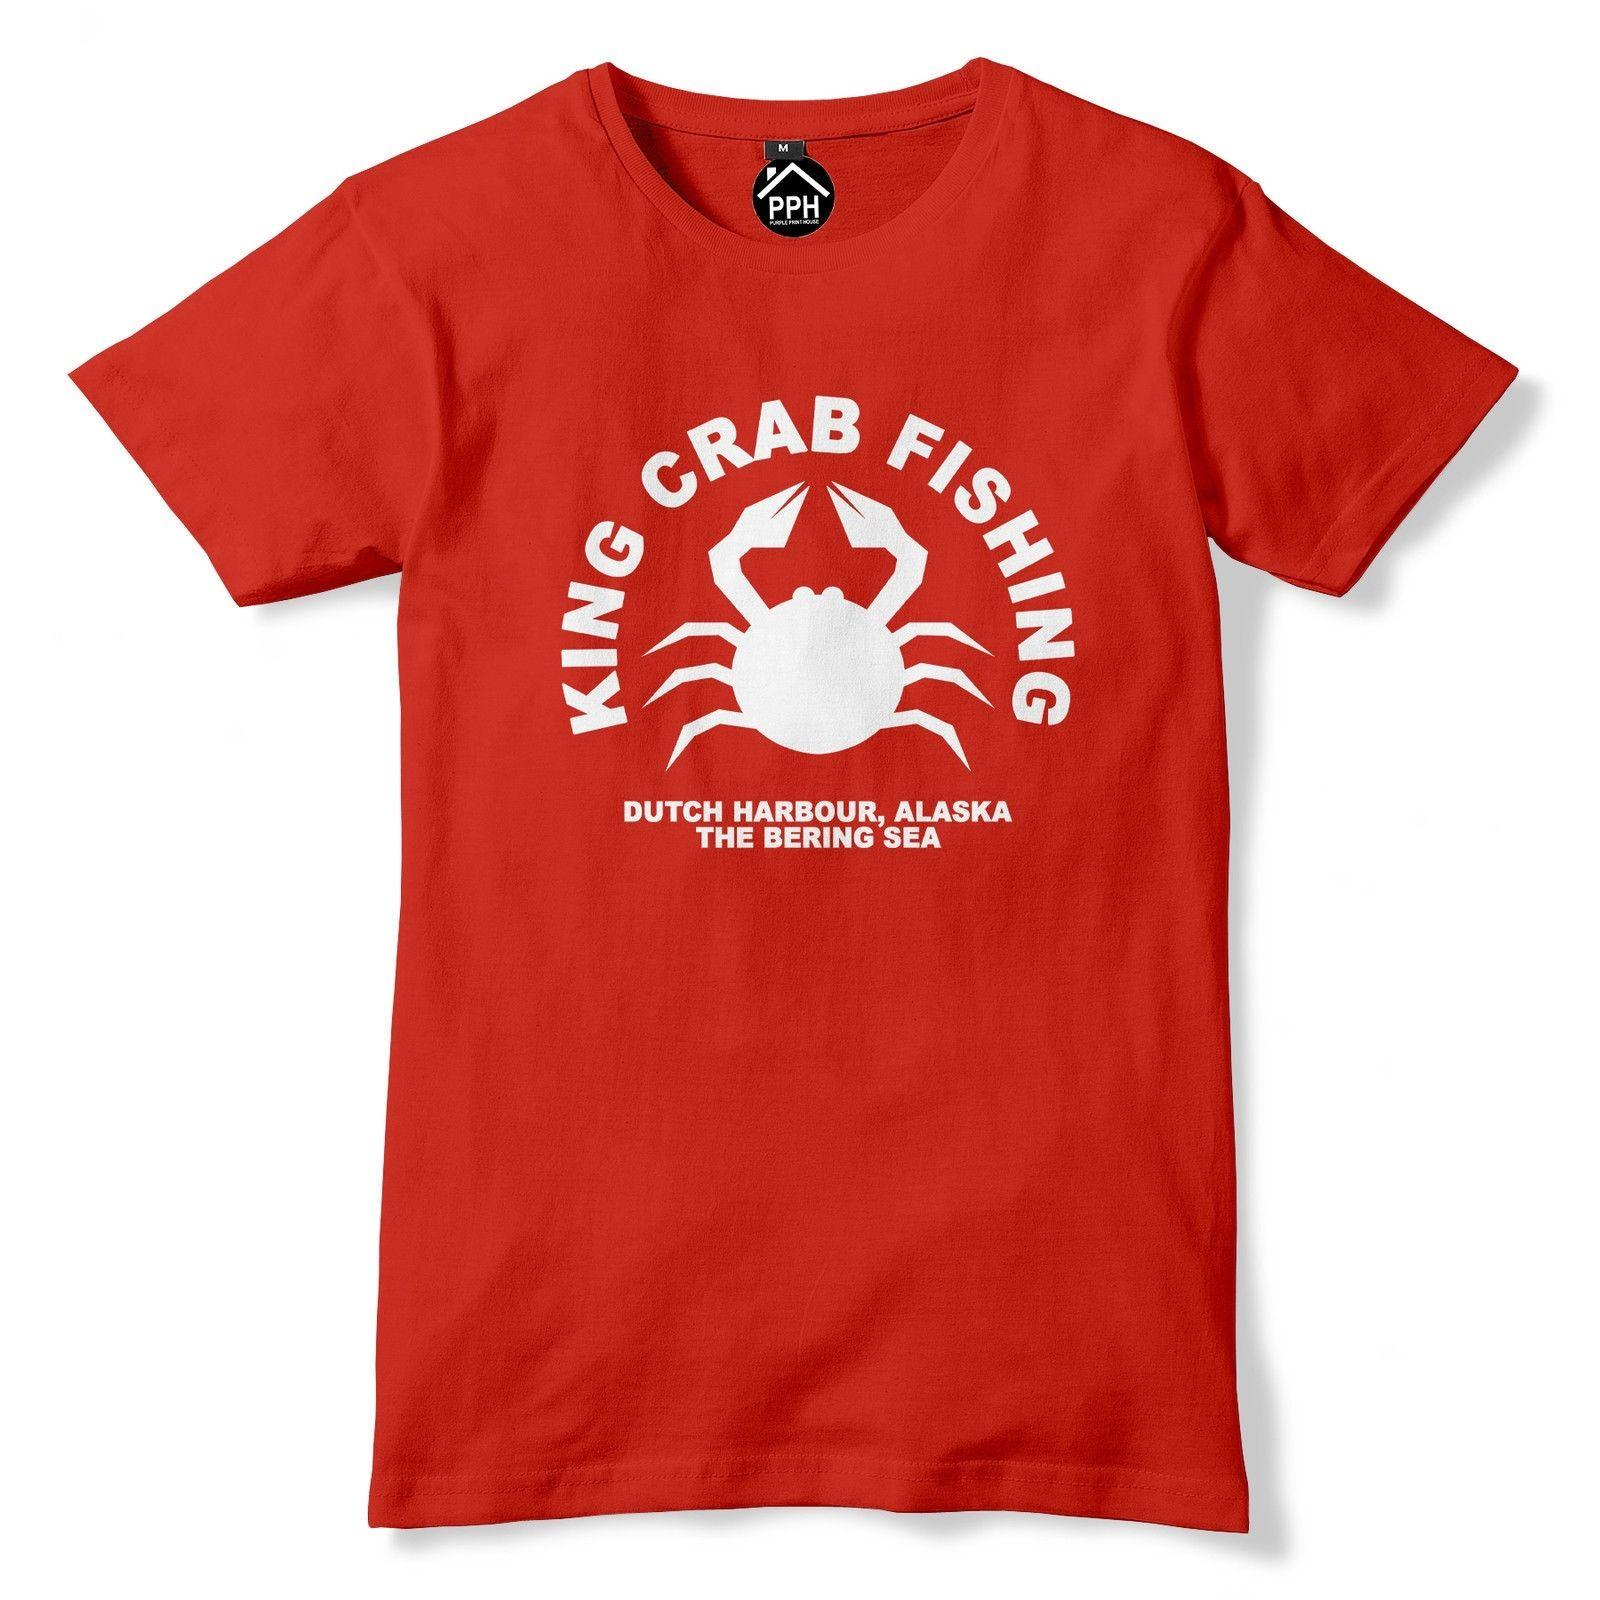 King Crab Fishing Tshirt Funny T Shirt Fish Fisherman Fly Angler Alaska PT9  Funny free shipping Unisex Casual